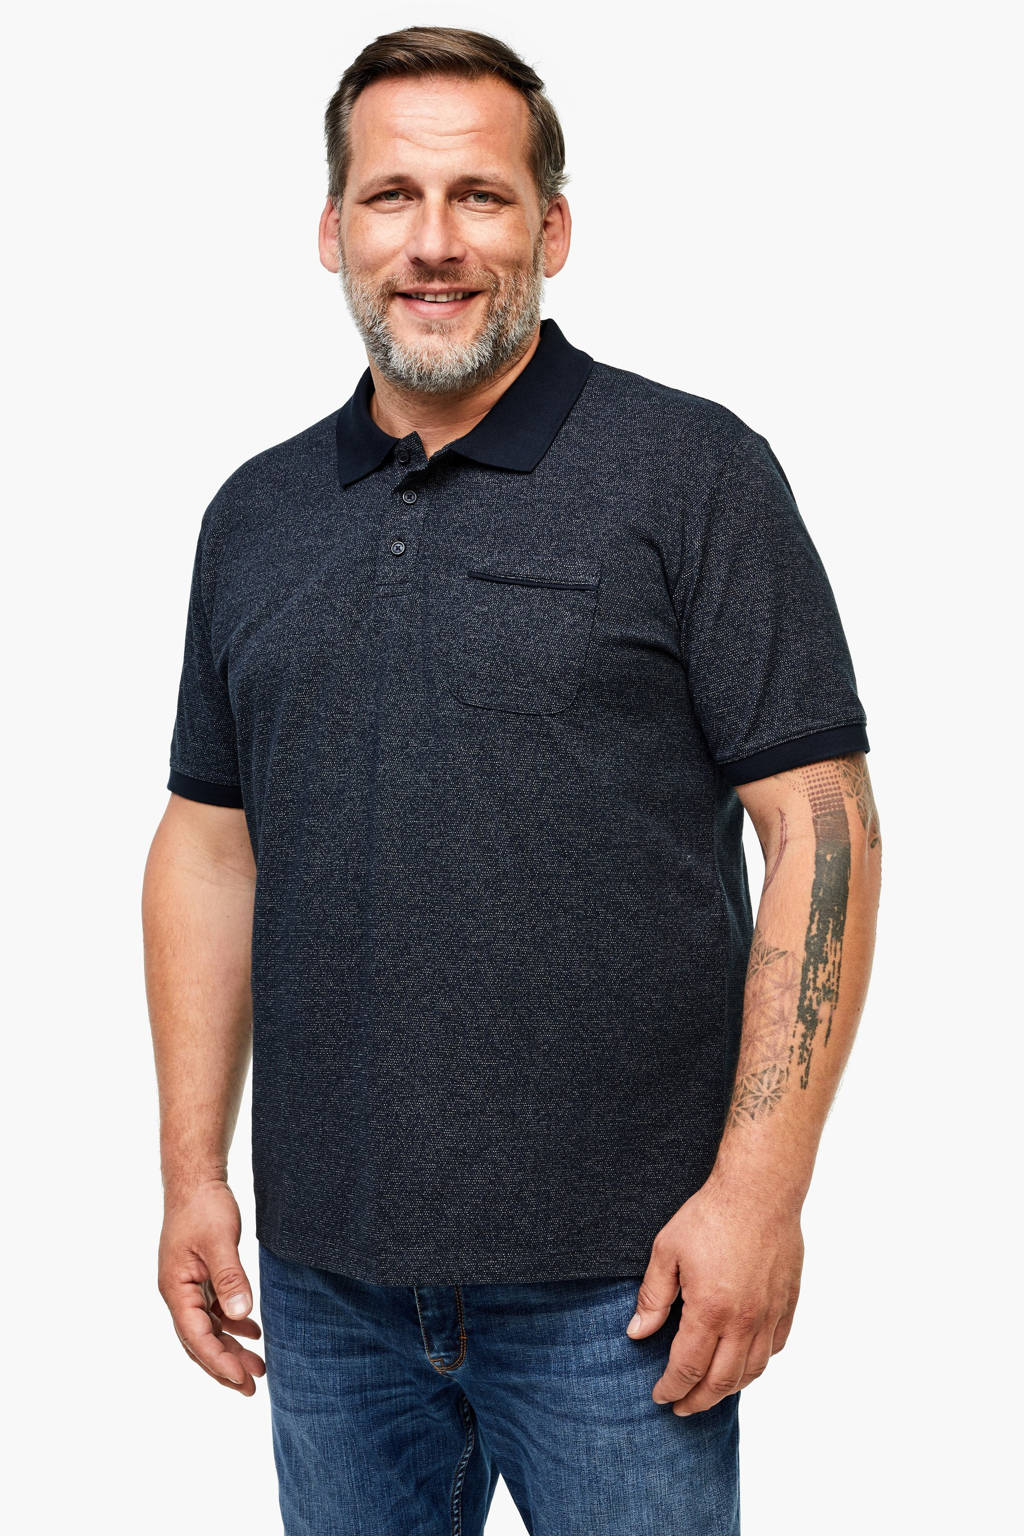 s.Oliver gemêleerde regular fit polo donkerblauw, Donkerblauw